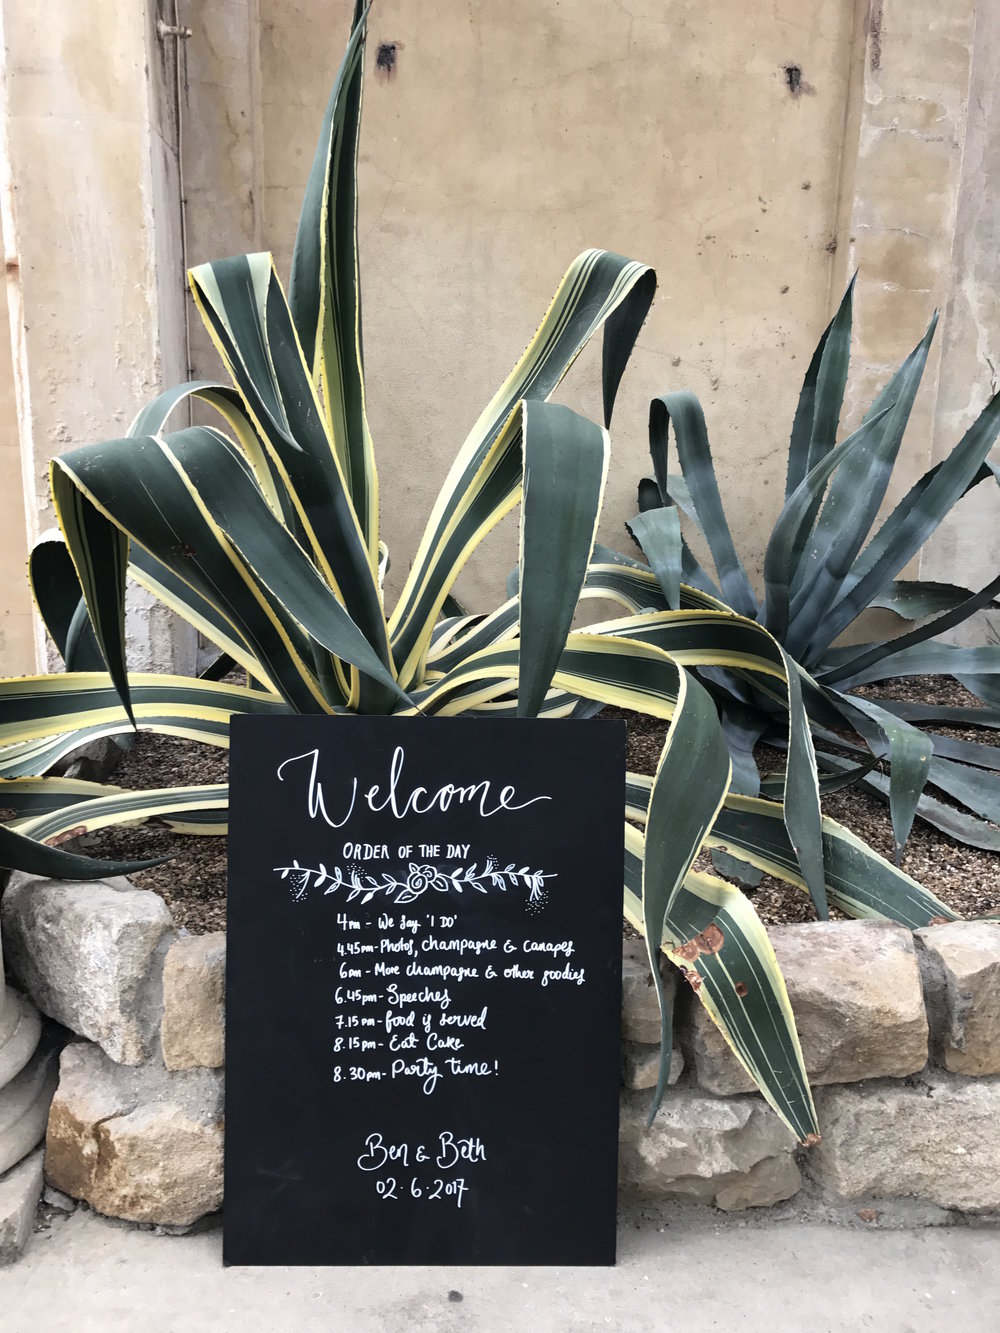 Handwritten signs - Add character to your event with handwritten welcome signs, table plans & directional signage